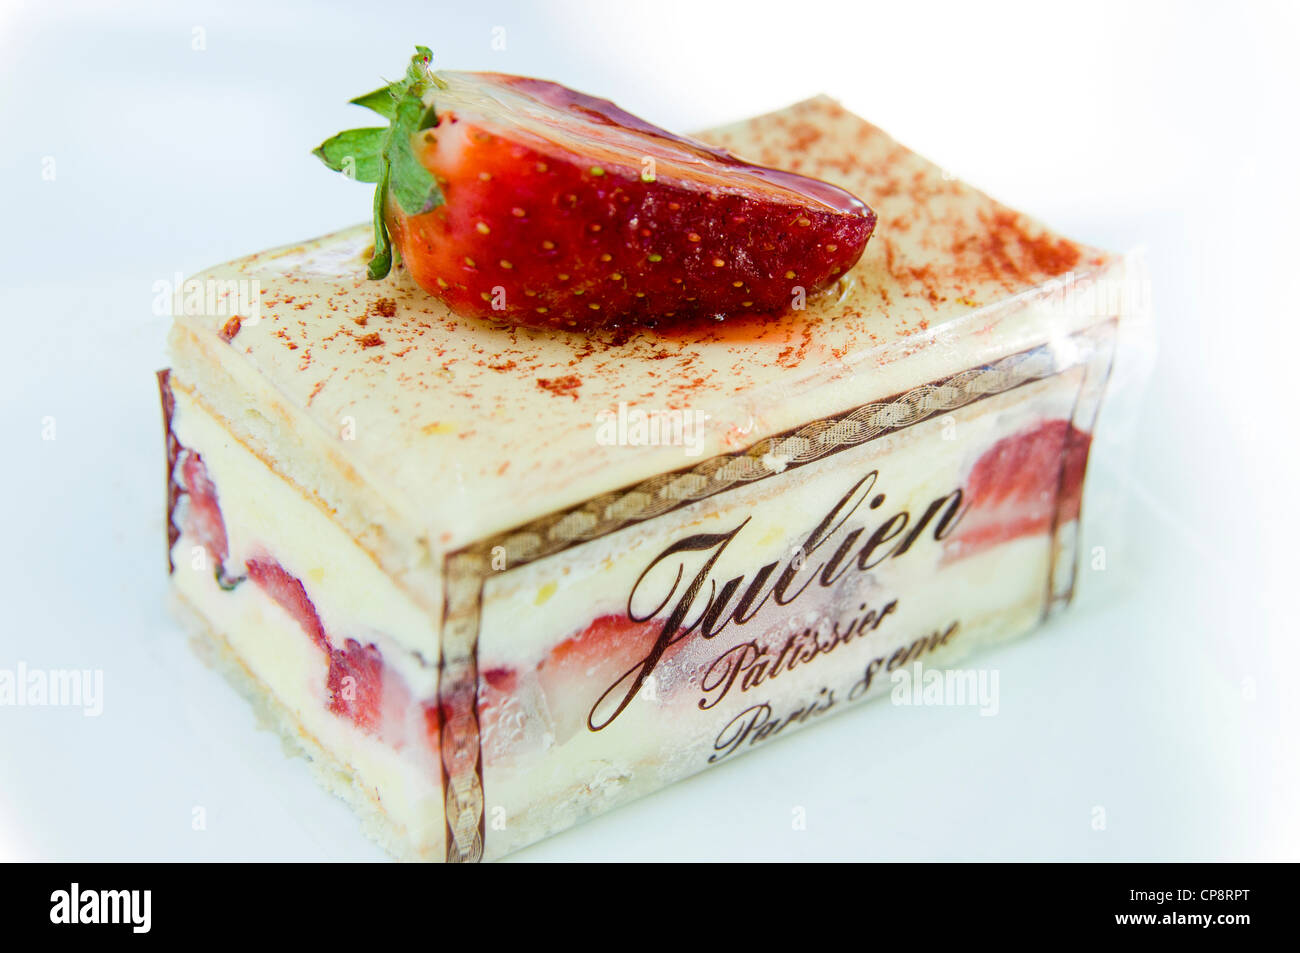 Strawberry cheesecake from a patisserie in Paris, France - Stock Image